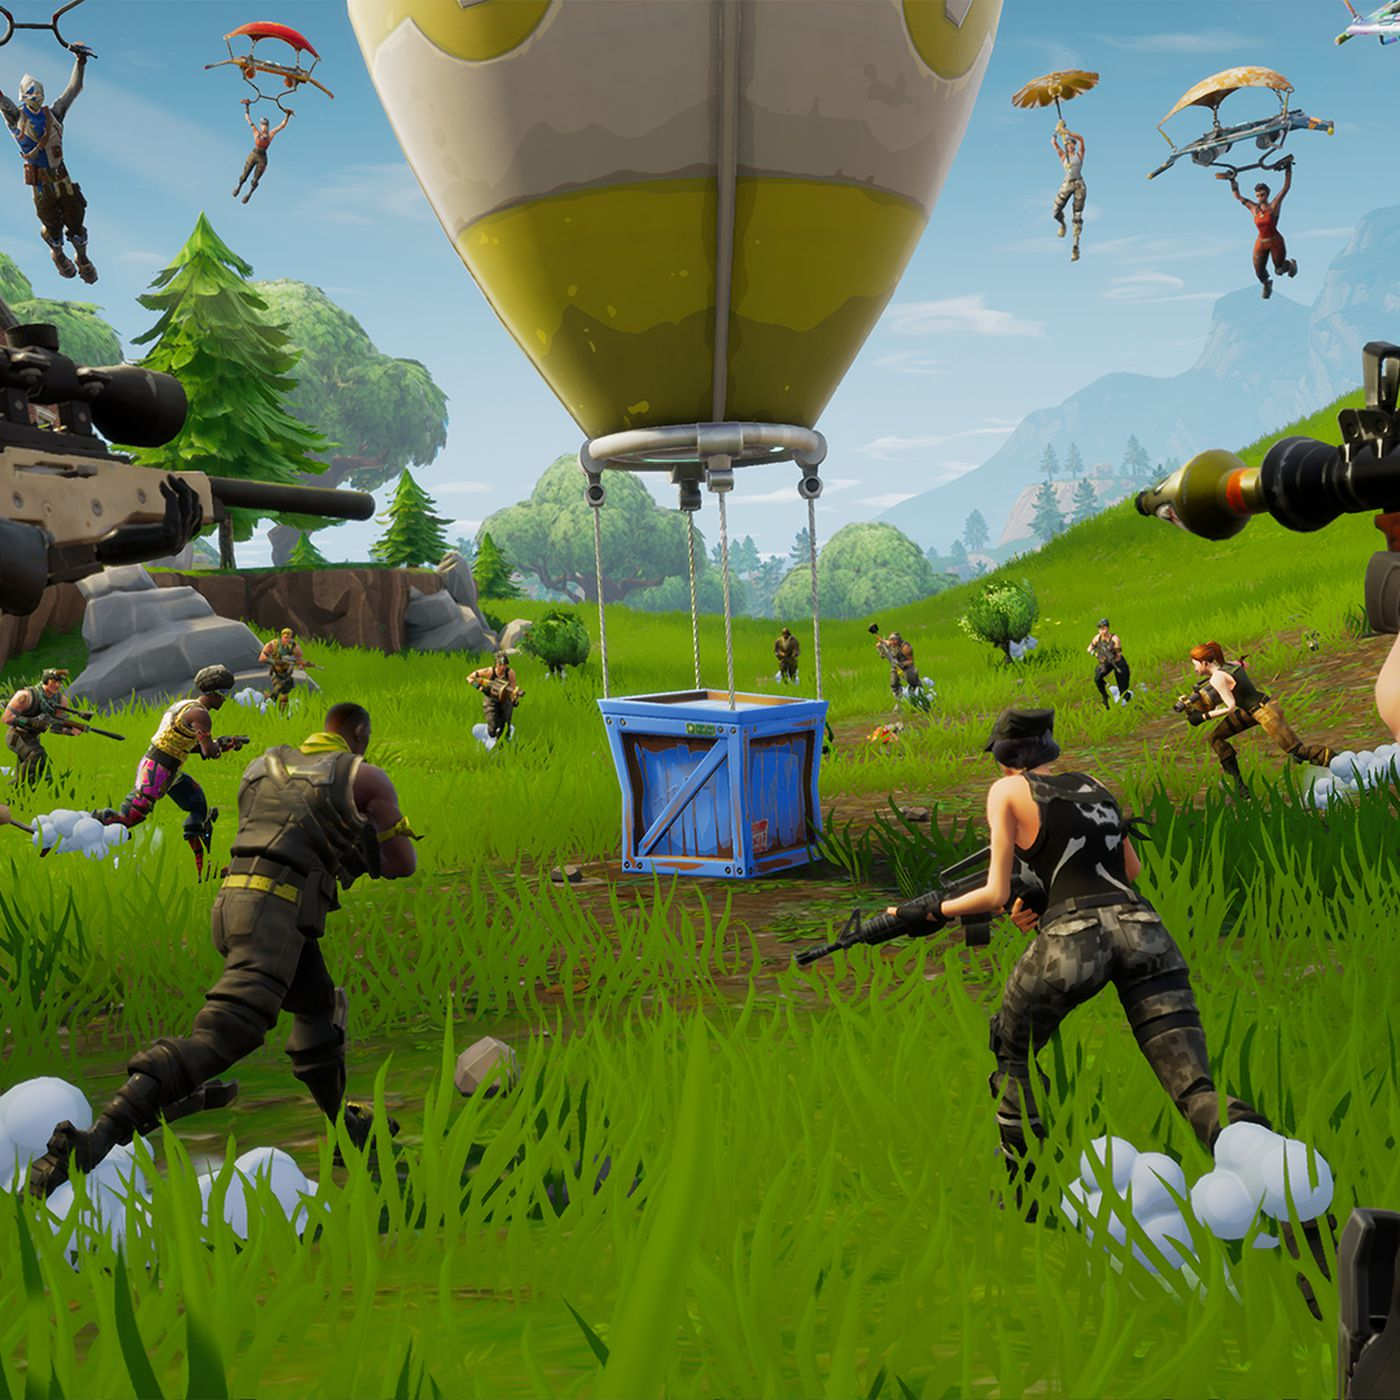 Calling Fortnite a battle royale game misses the point   Polygon